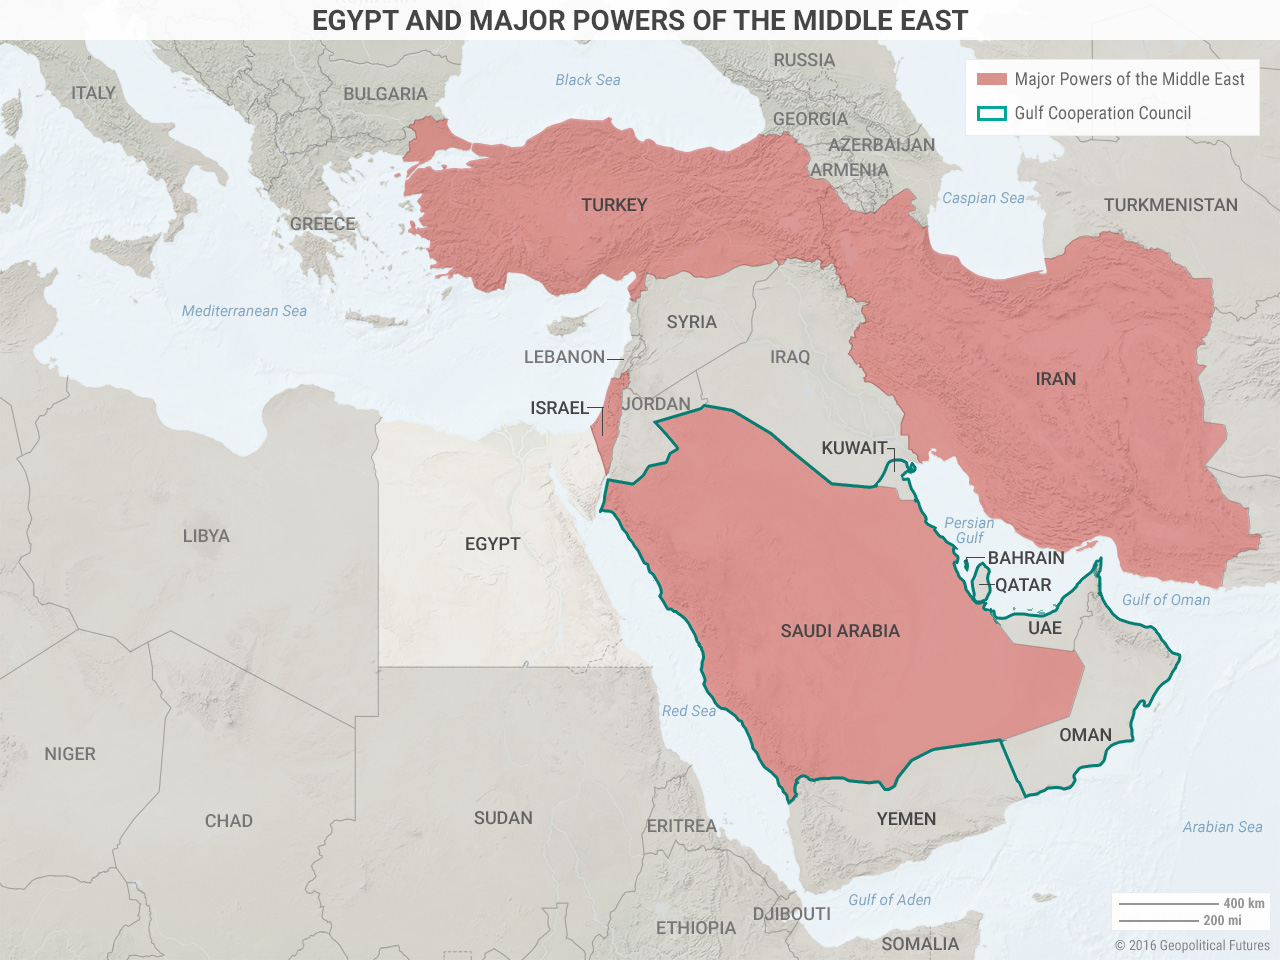 egypt-major-powers-of-middle-east